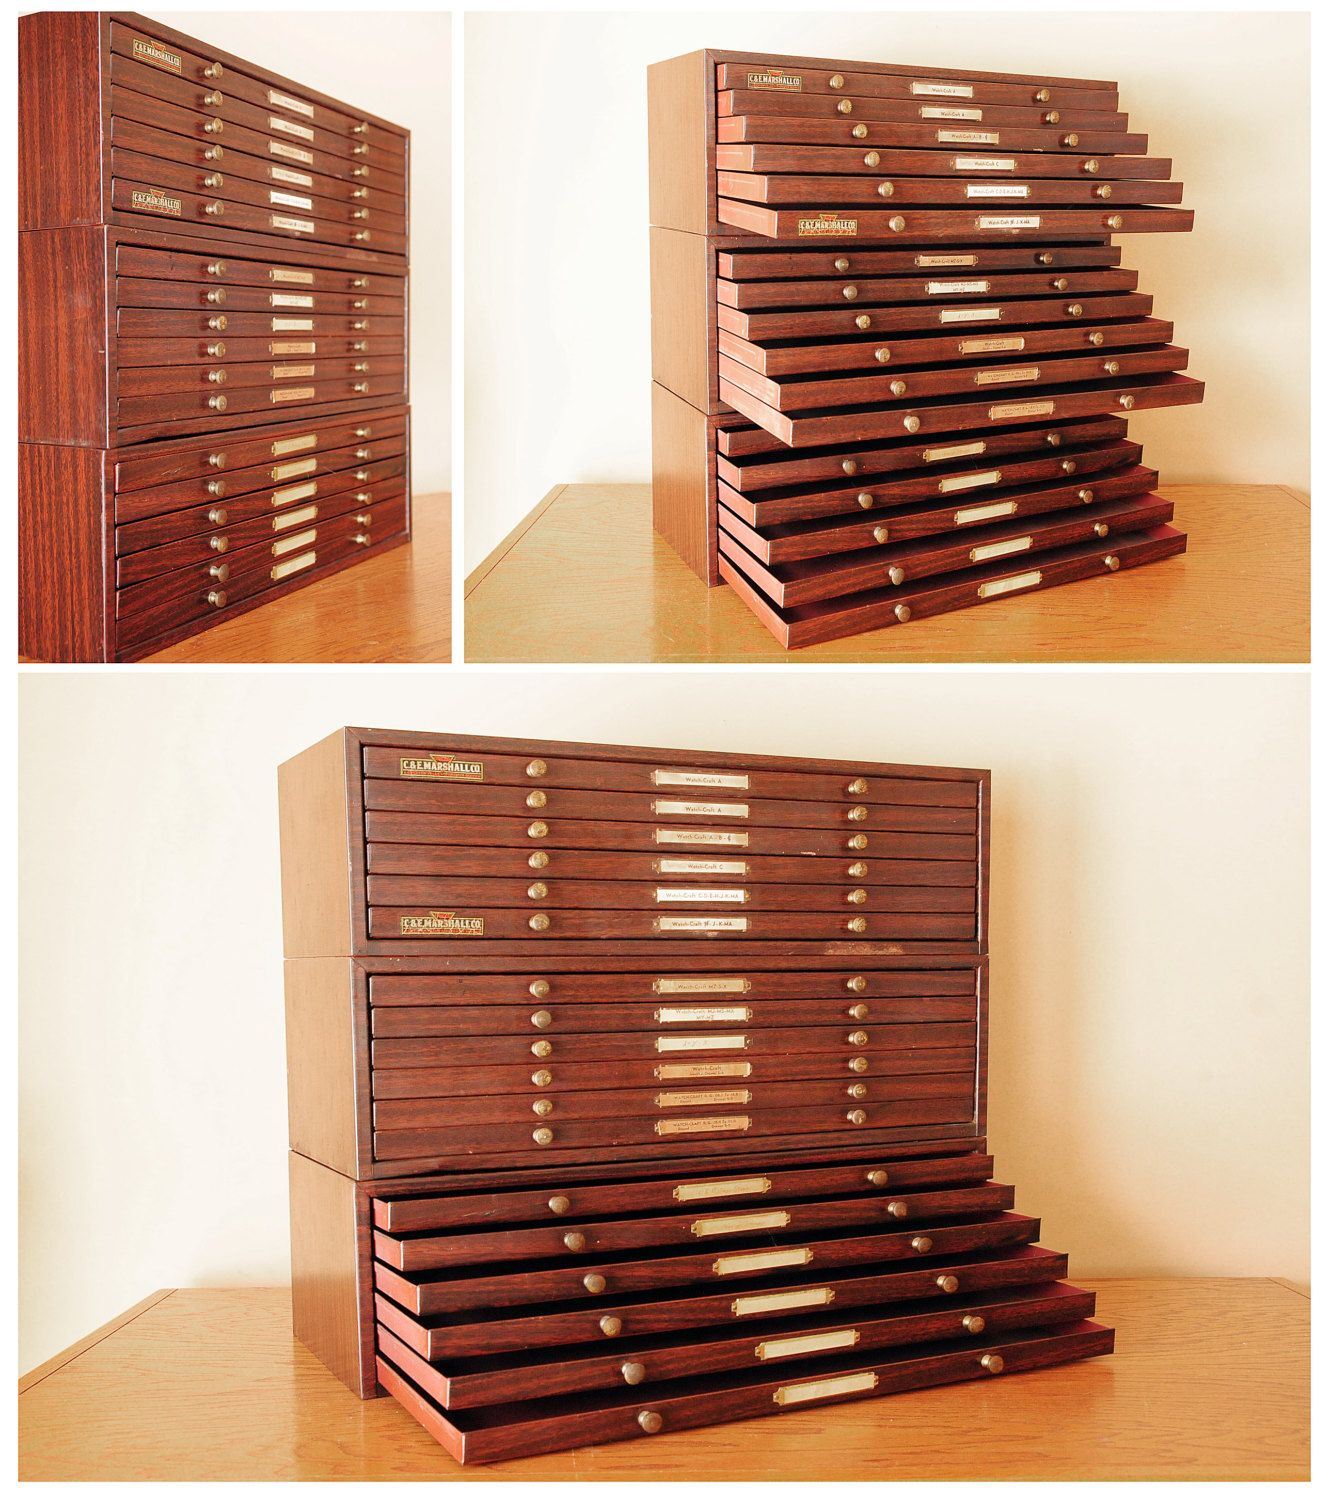 watchmakers cabinet - 18 drawer storage brass knobs | Oustanding ...